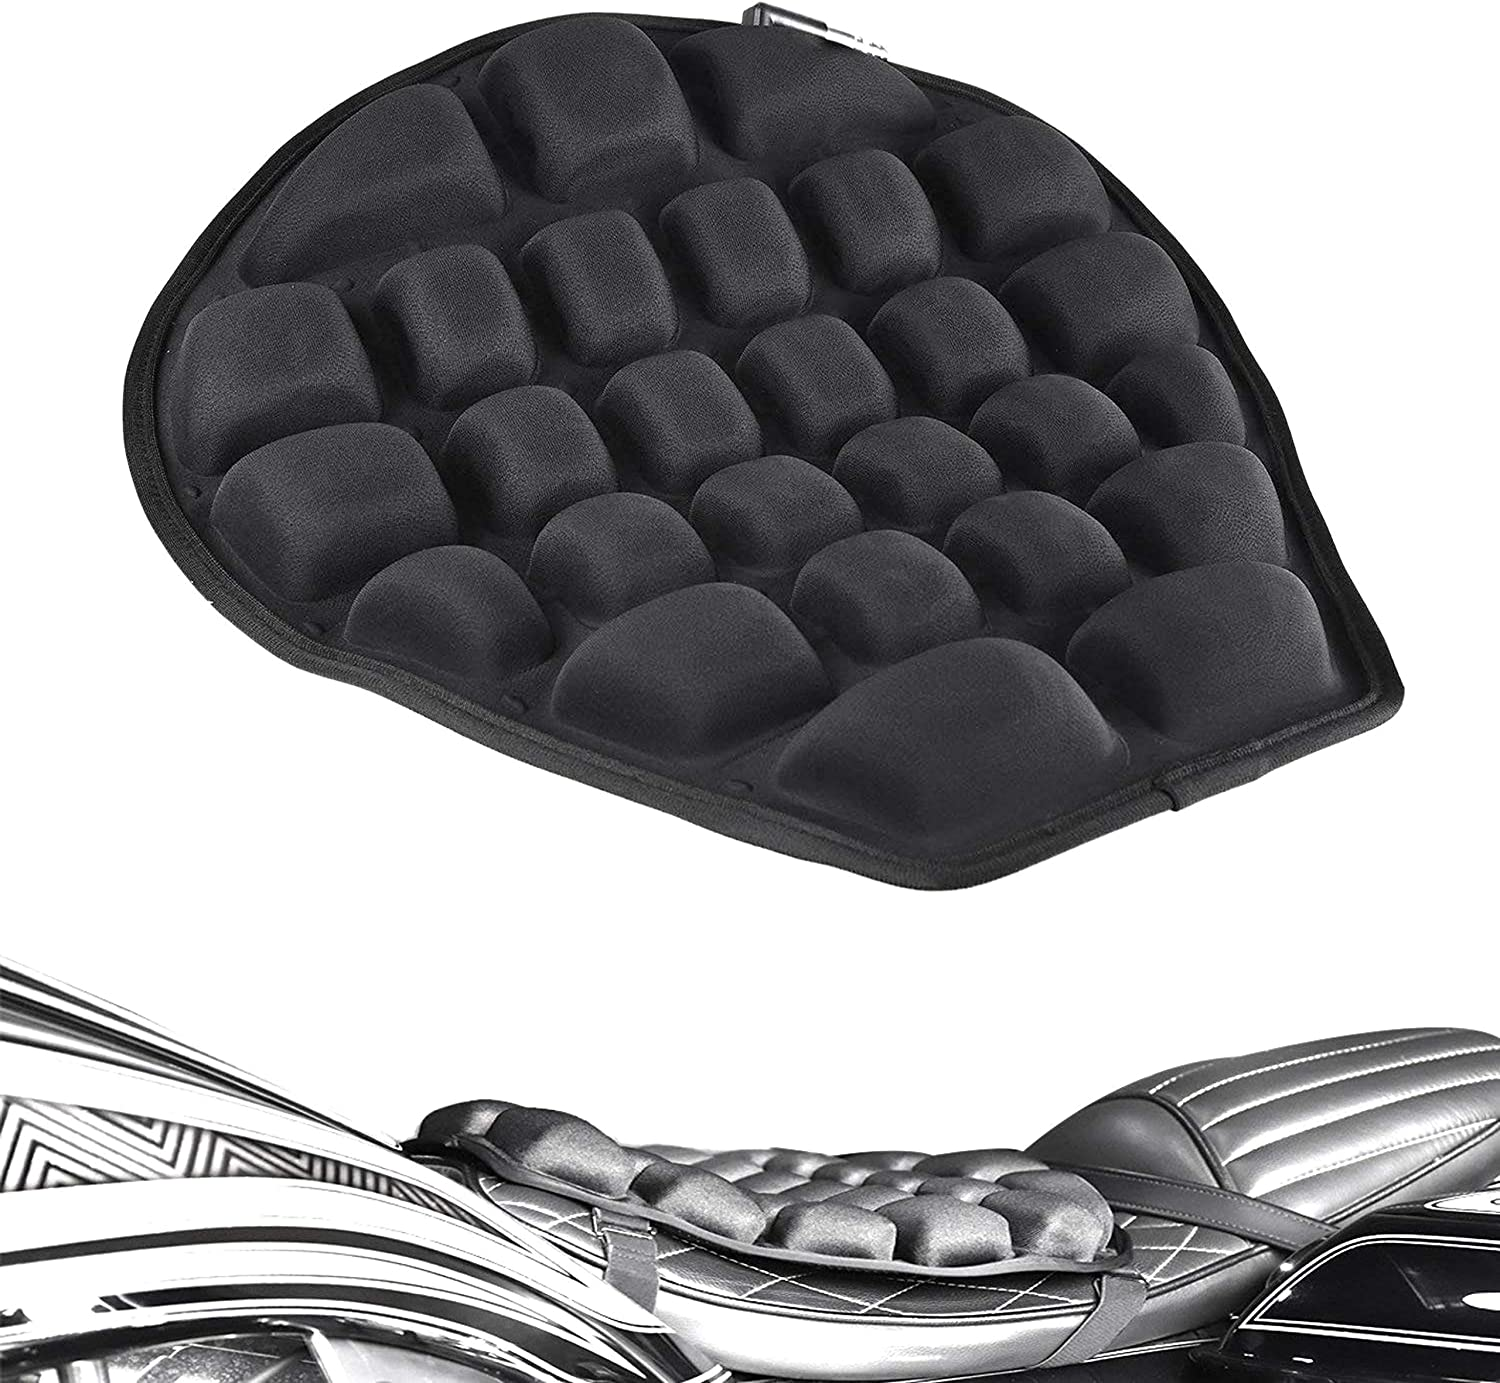 DULALA Seat Cushion Motorcycle Air Pressure Relief Ride Seat Cushion TPU Water-Fillable Seat Pad for Cruiser Touring Saddles